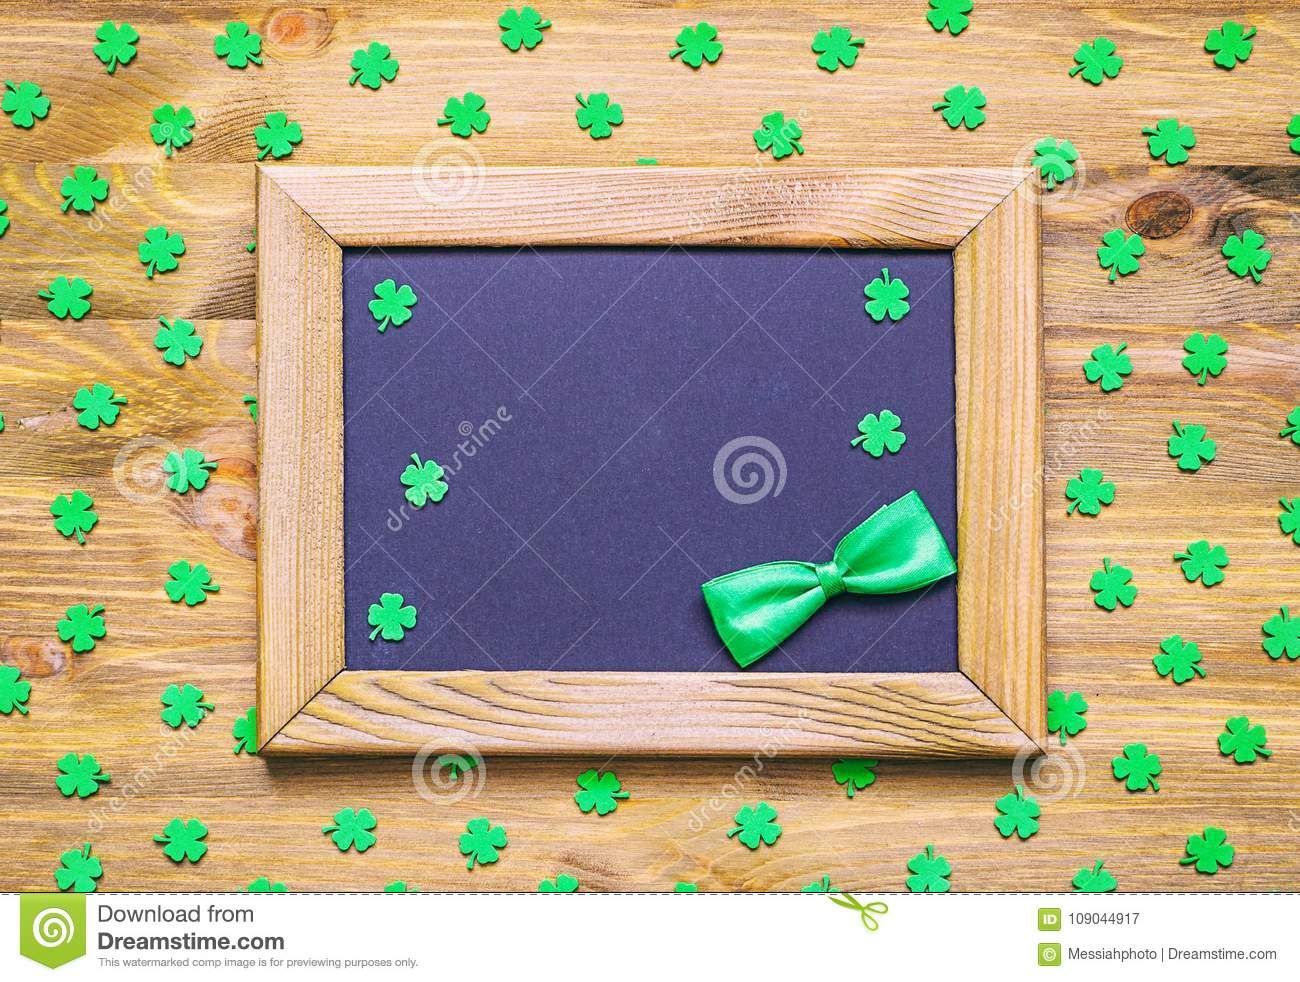 St Patricks Day holiday background with green quatrefoils and frame with green bow tie on the wooden background